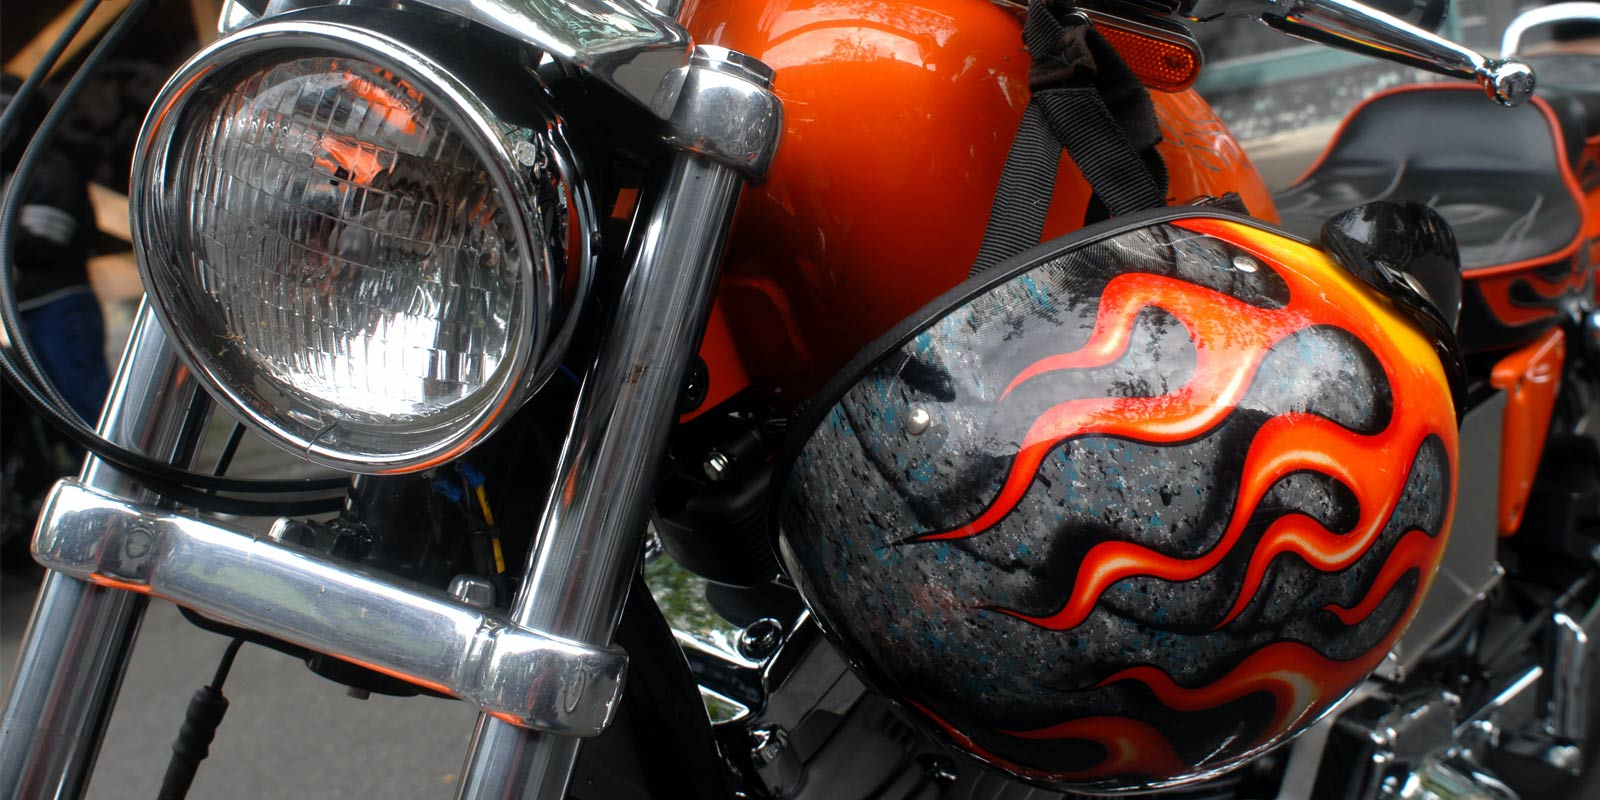 Motorcycle Painters in Canada